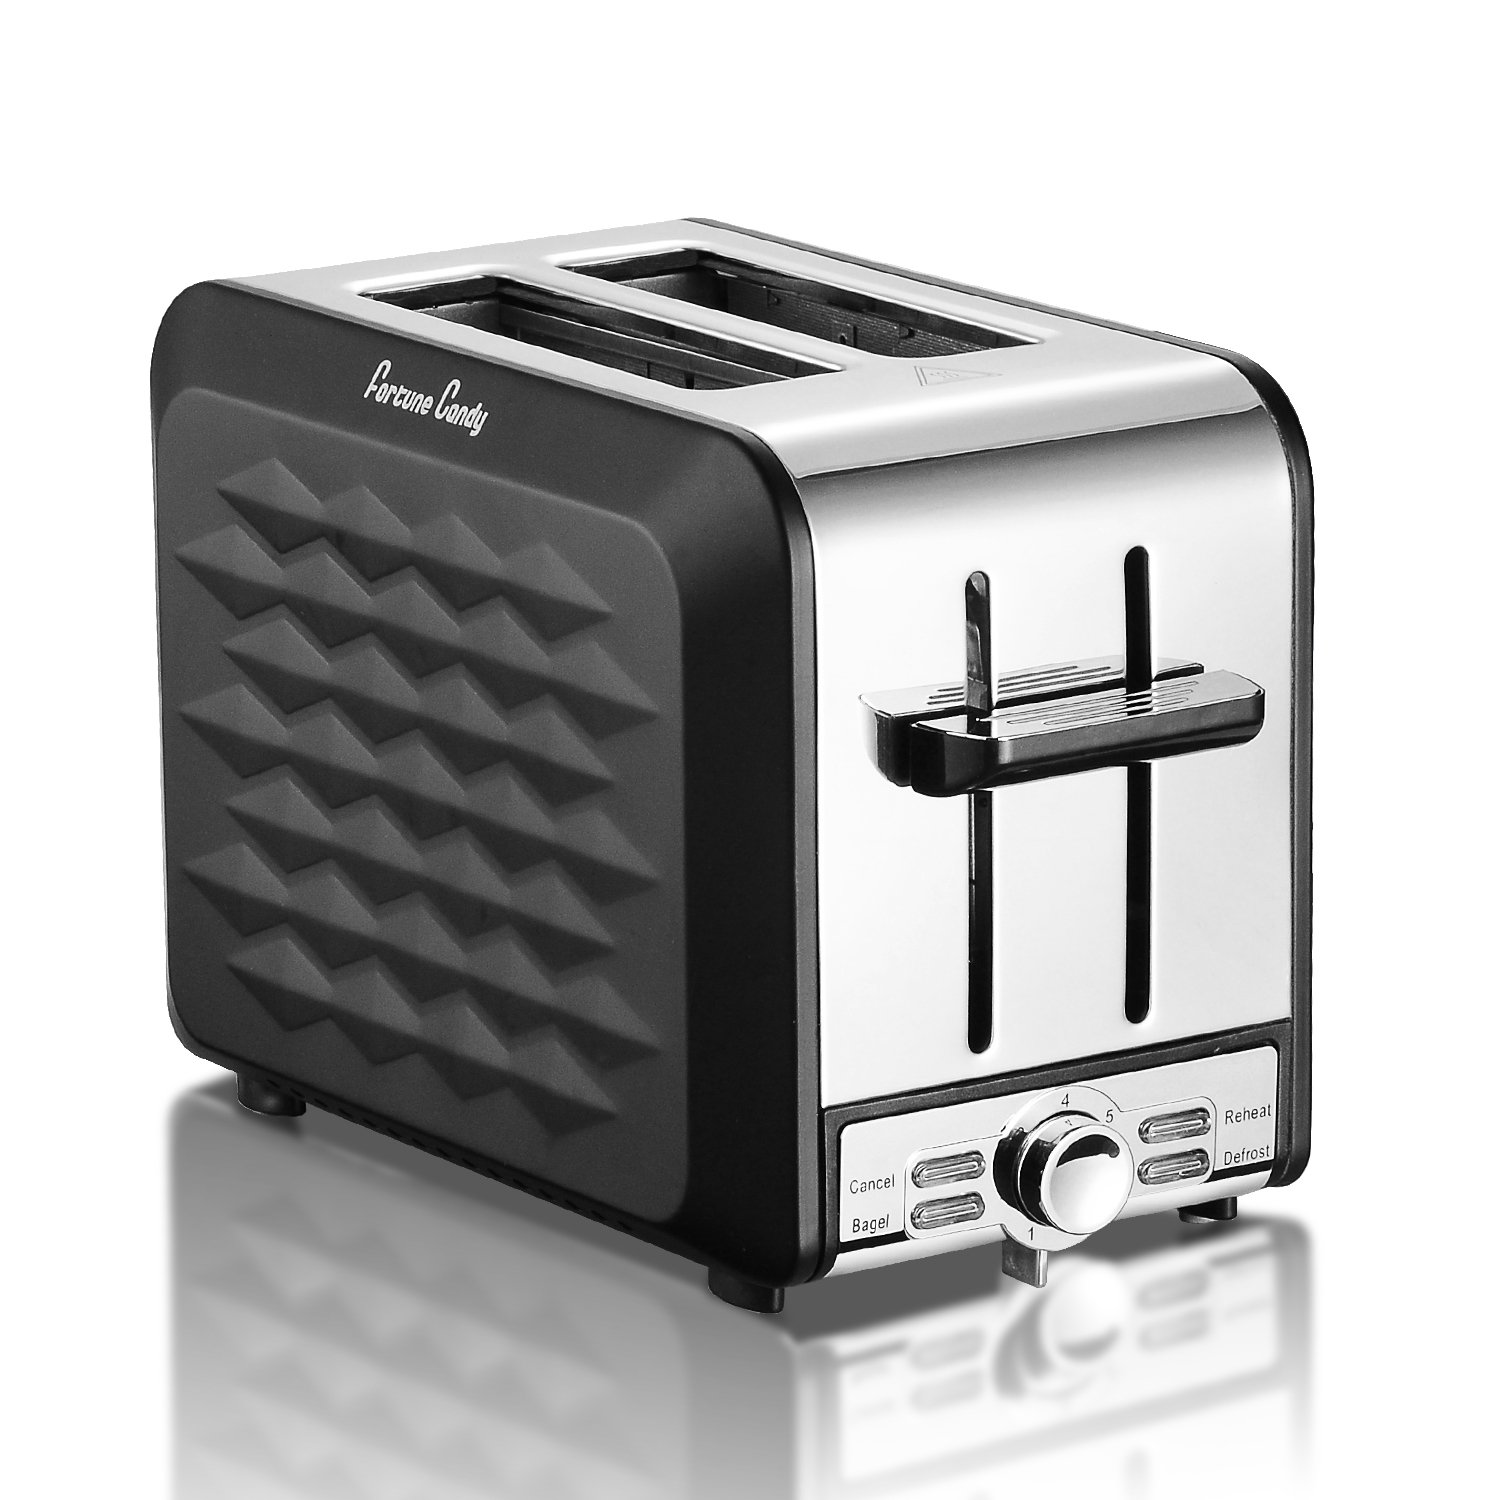 Fortune Candy Stainless Steel 2 Slices toaster, black toaster With Extra Wide Slot, 7-Shade Control